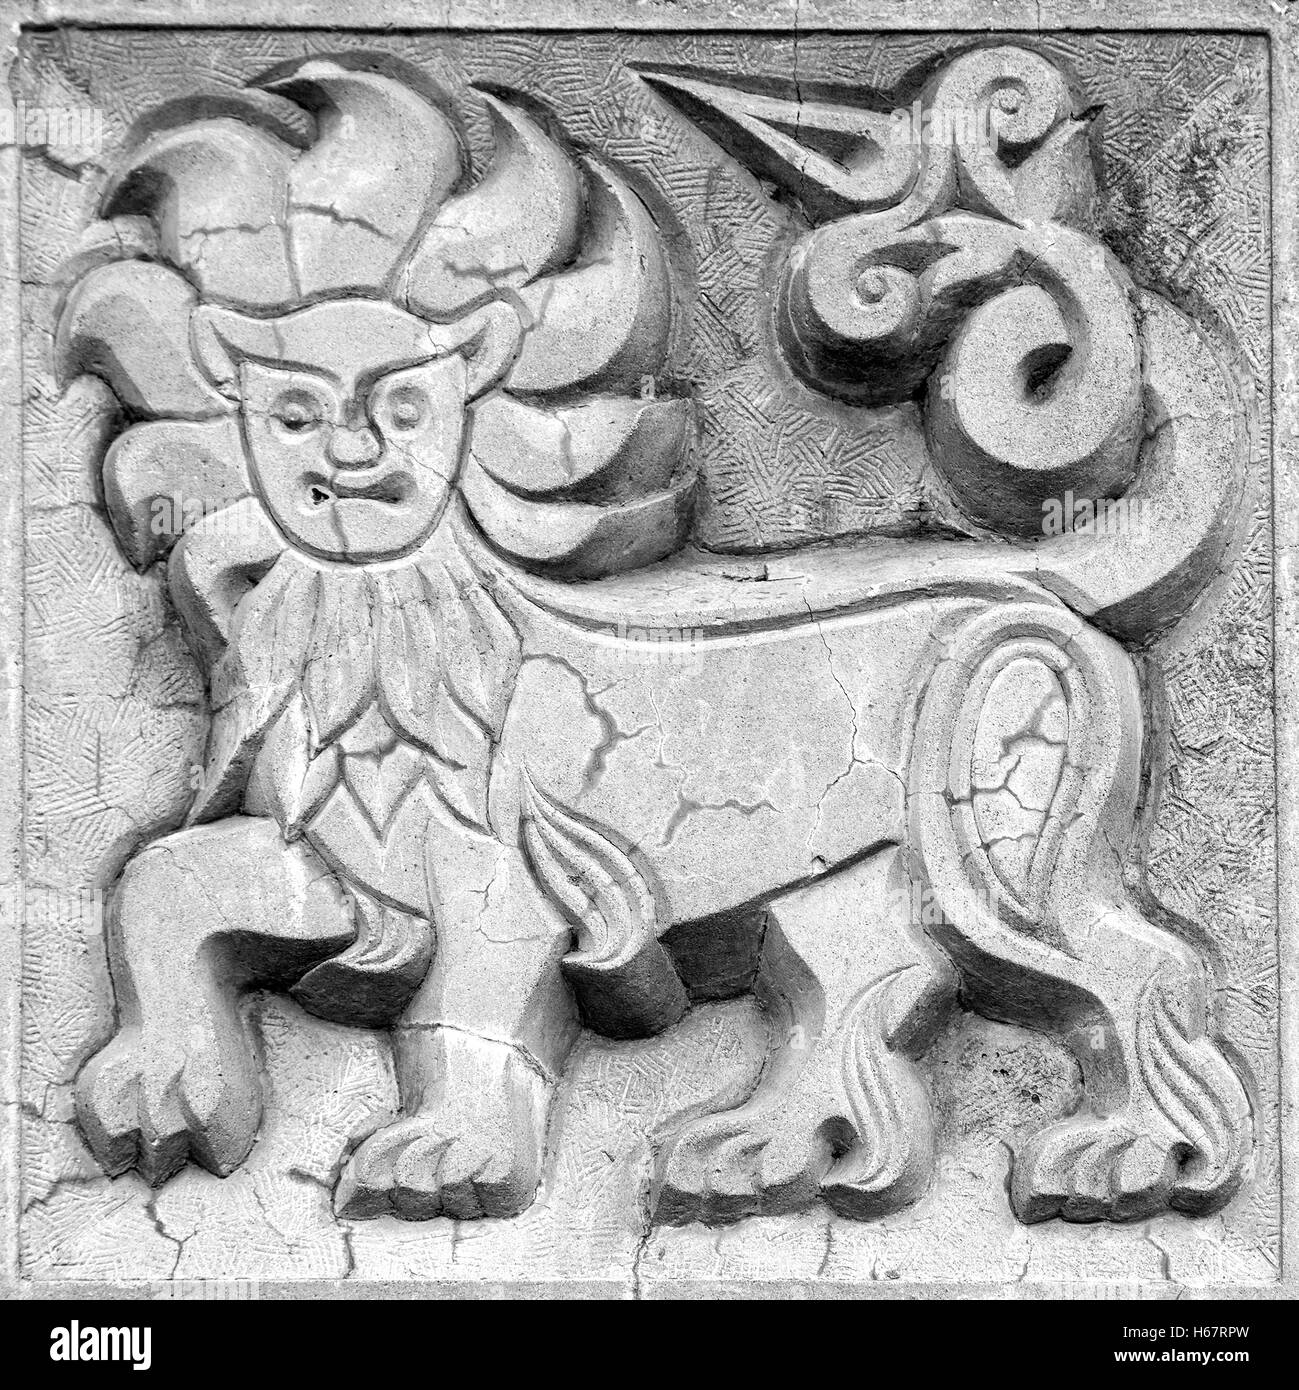 big fabulous lion, stone bas-relief on the wall - Stock Image